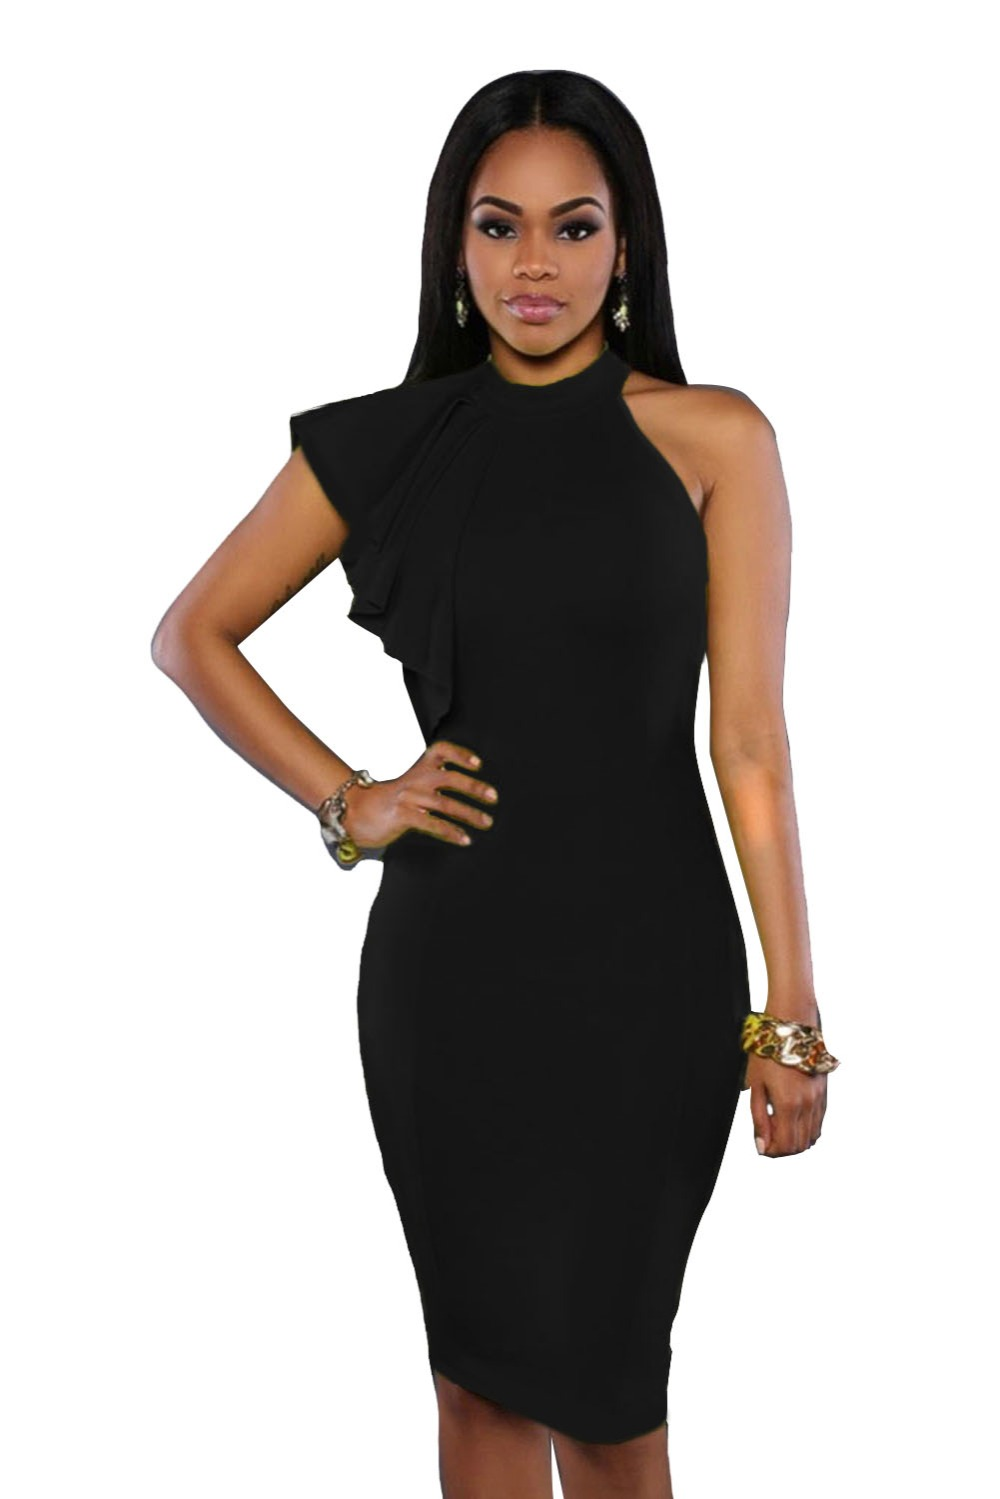 bc67231f Echoine One Shoulder Ruffle Sleeve Bodycon Dress New Asymmetrical  Black/White/Yellow Knee Length Midi Party Dresses Vestidos-in Dresses from  Women's ...